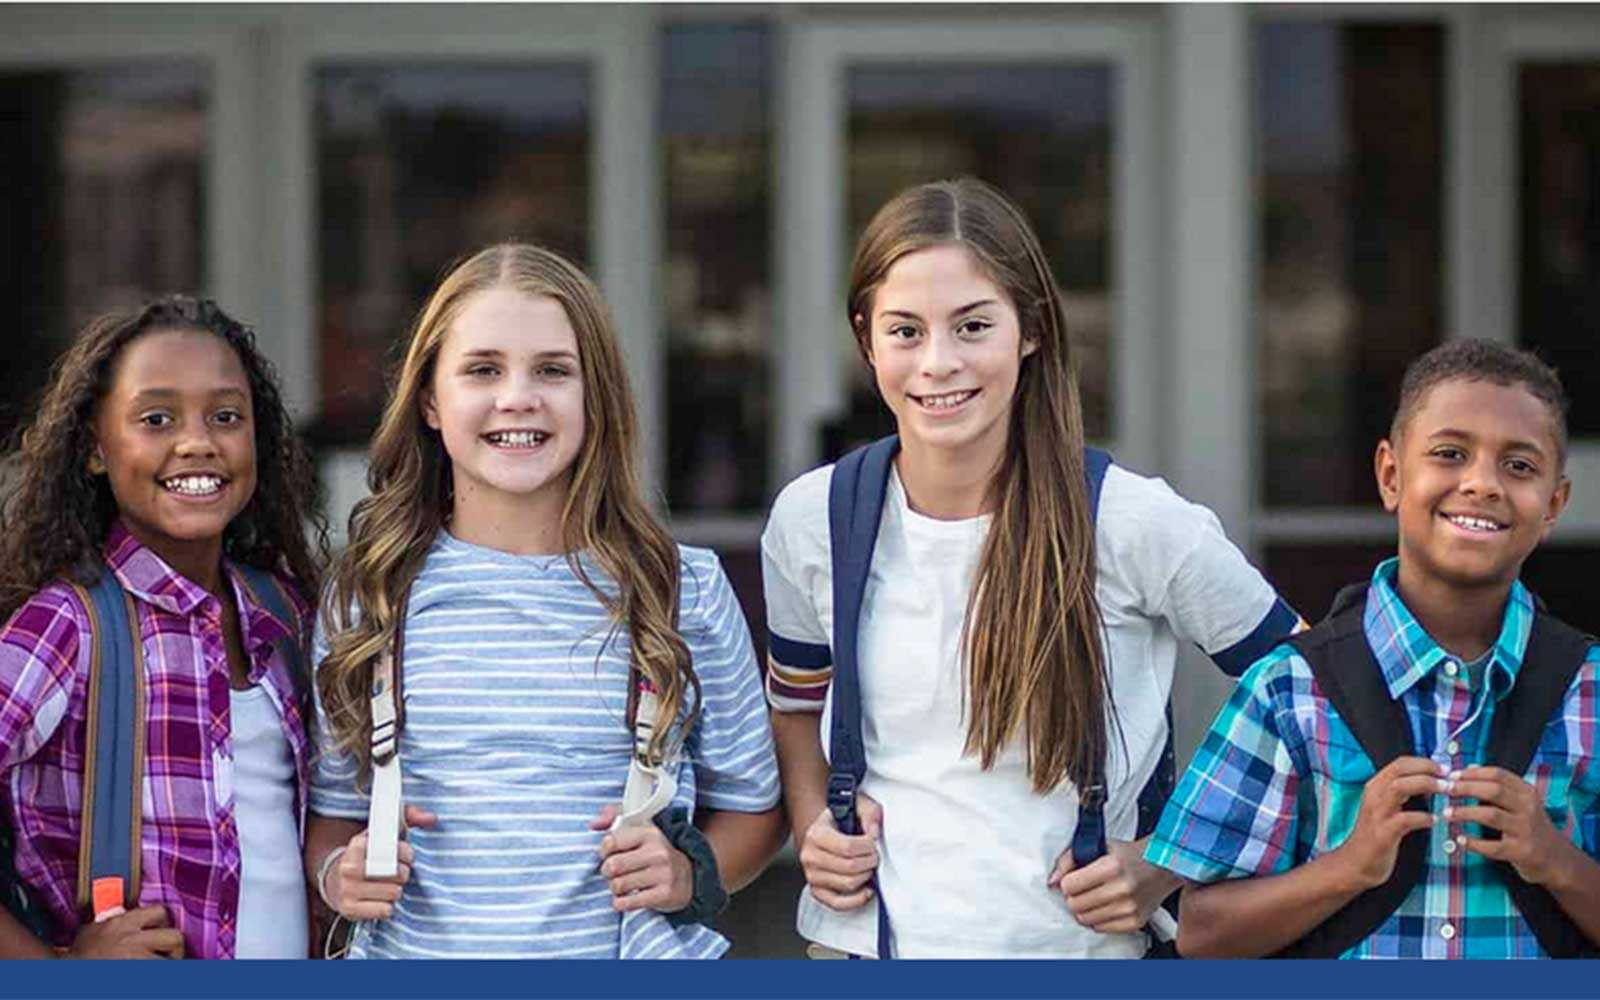 4 middle school students standing in front of school